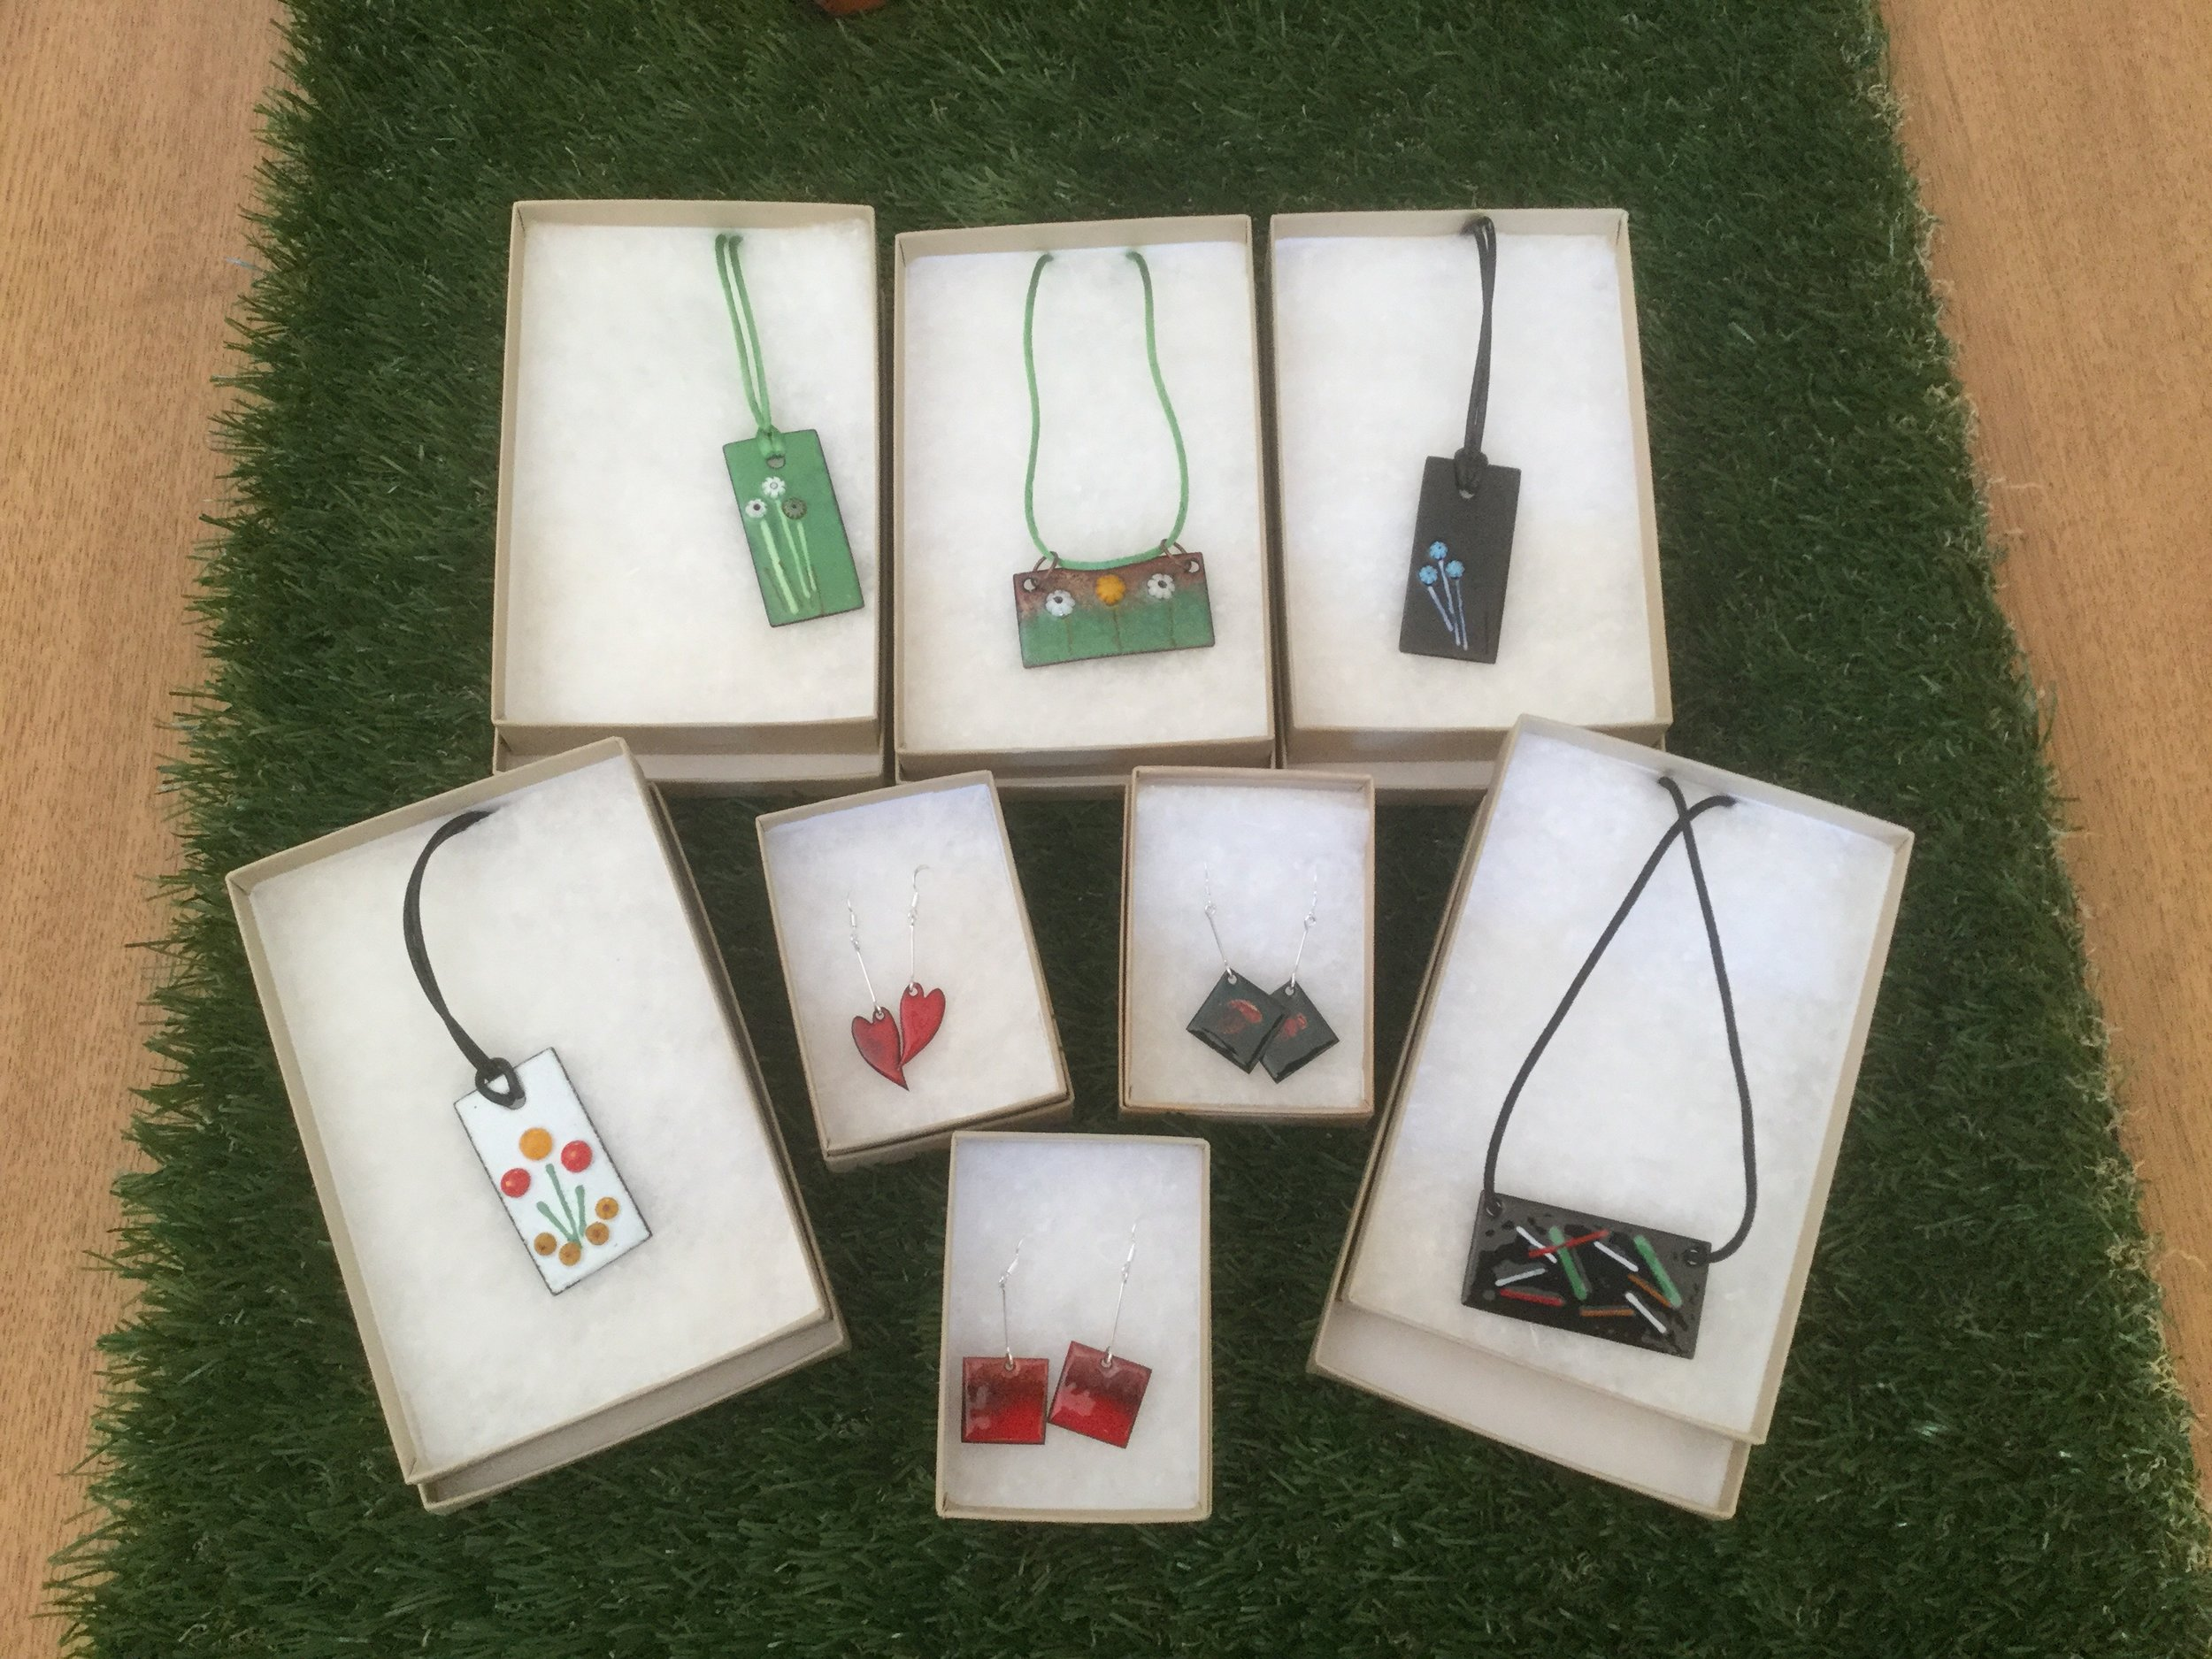 New enamel creations now available